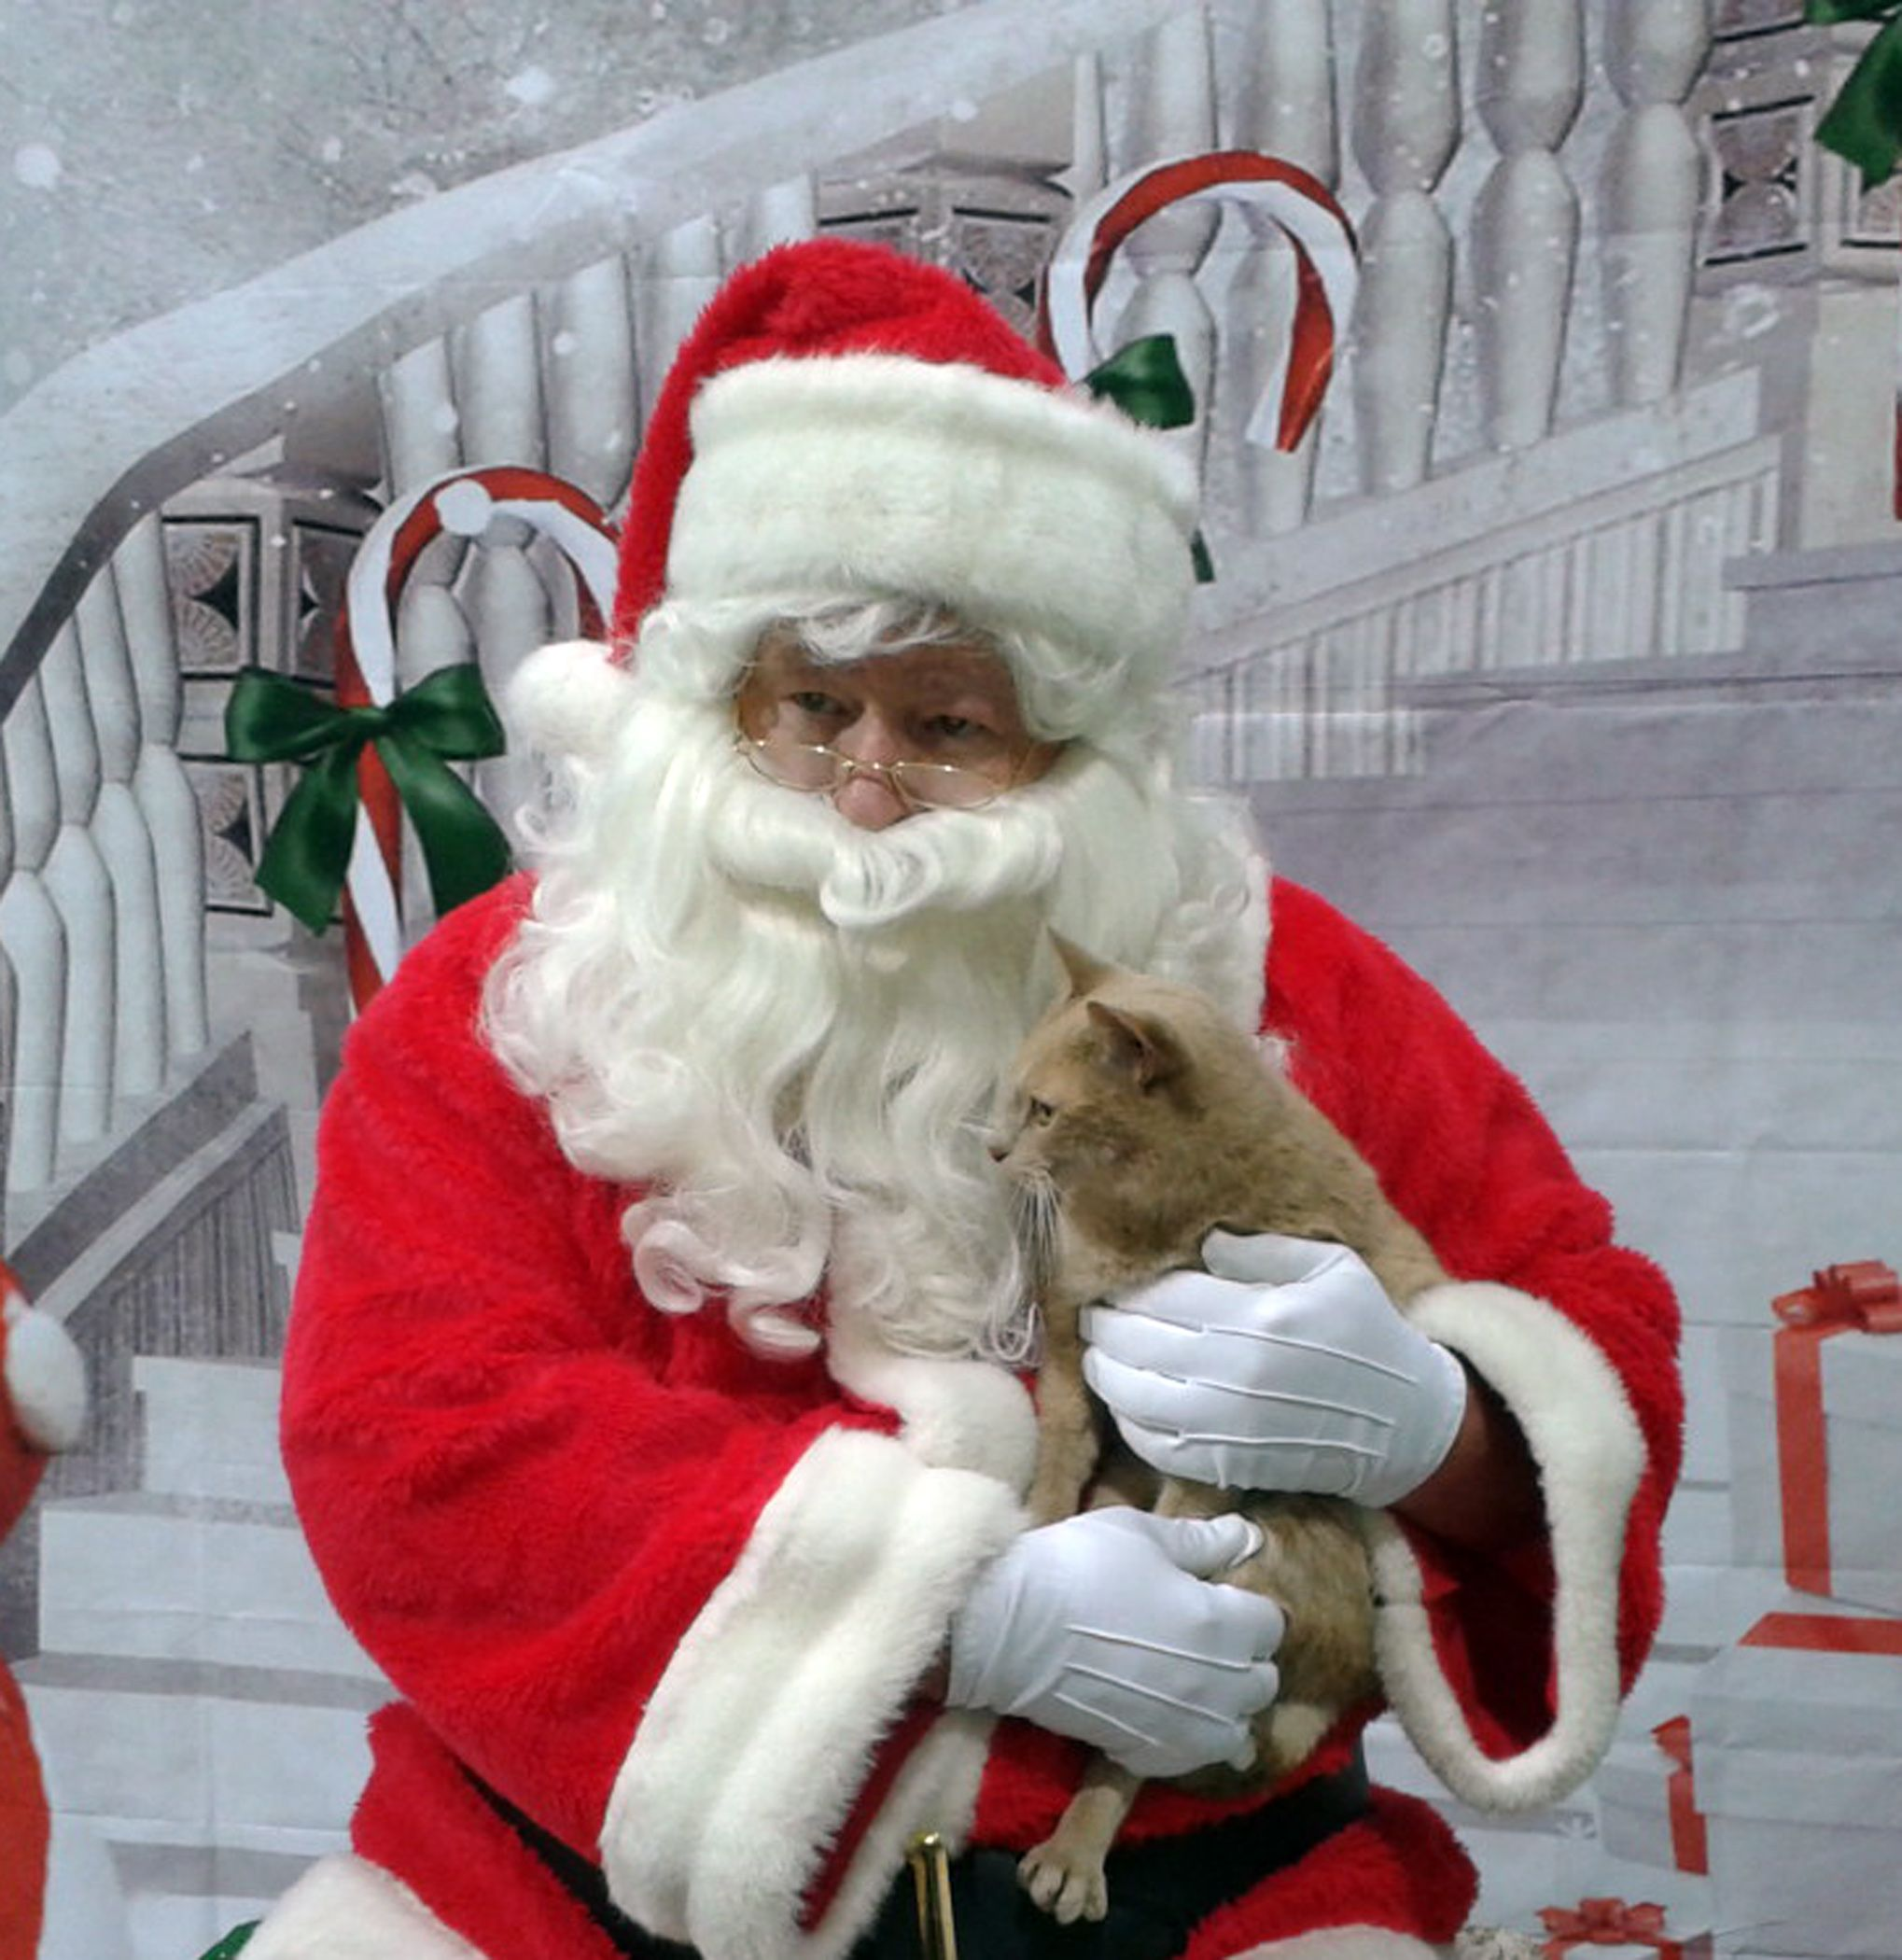 Merry Almost Christmas!  December 24, 2014   http://rikkisrefuge.blogspot.com/2014/12/merry-almost-christmas-december-24-2014_24.html